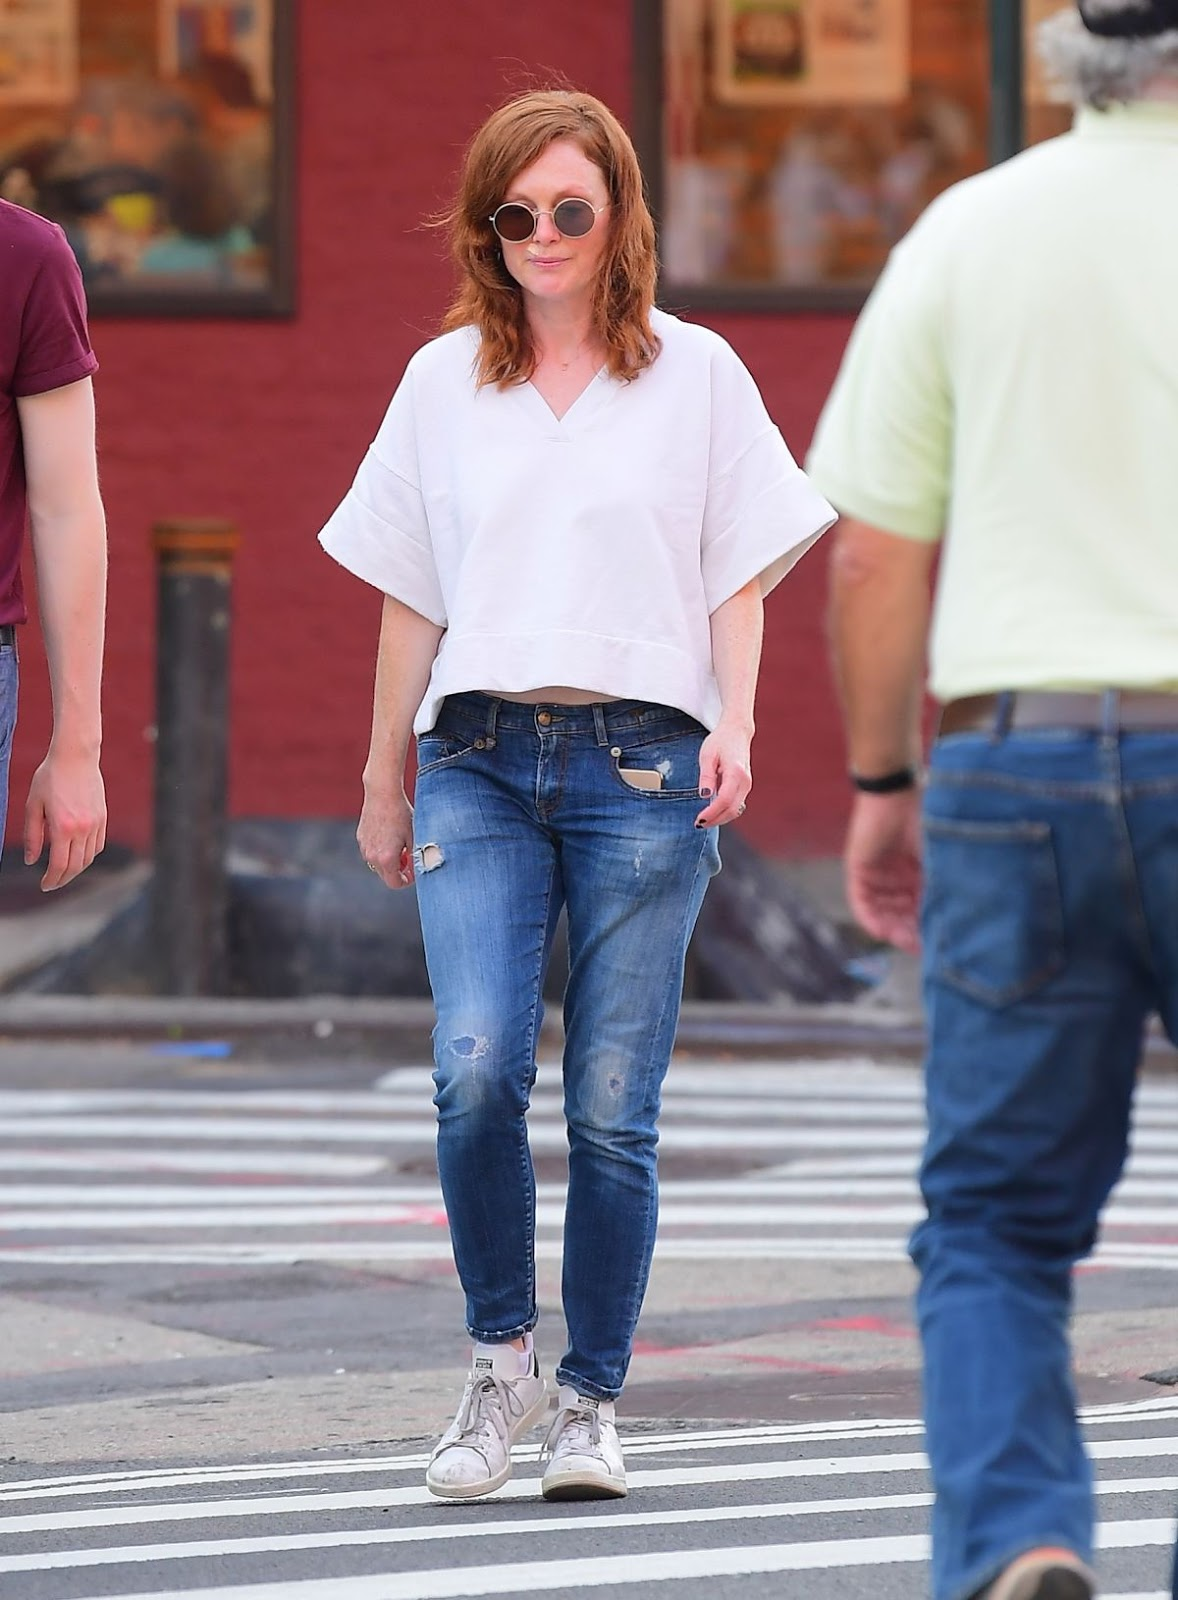 Julianne Moore and Her Daughter Liv Freundlich Out in New York, 06.23.2019 3